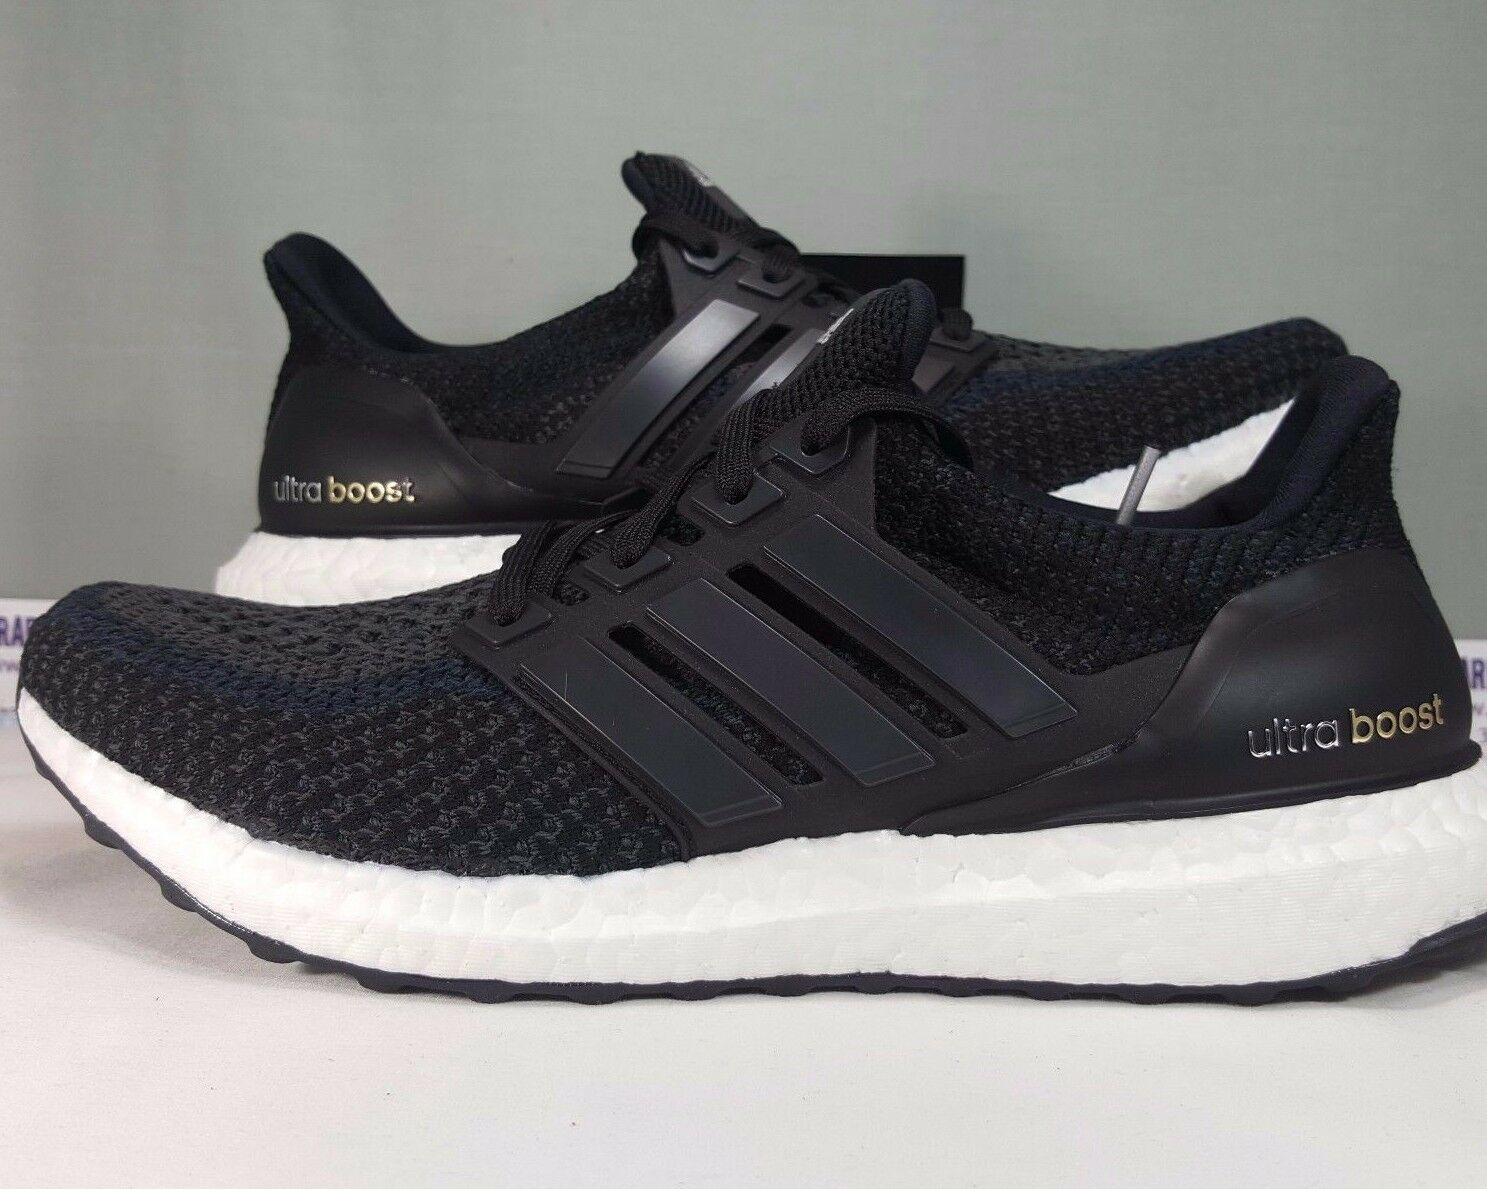 Adidas ultra Boost Core Negro zapatos bb3910 ultraboost mujer running zapatos Negro cómodos 3a582f